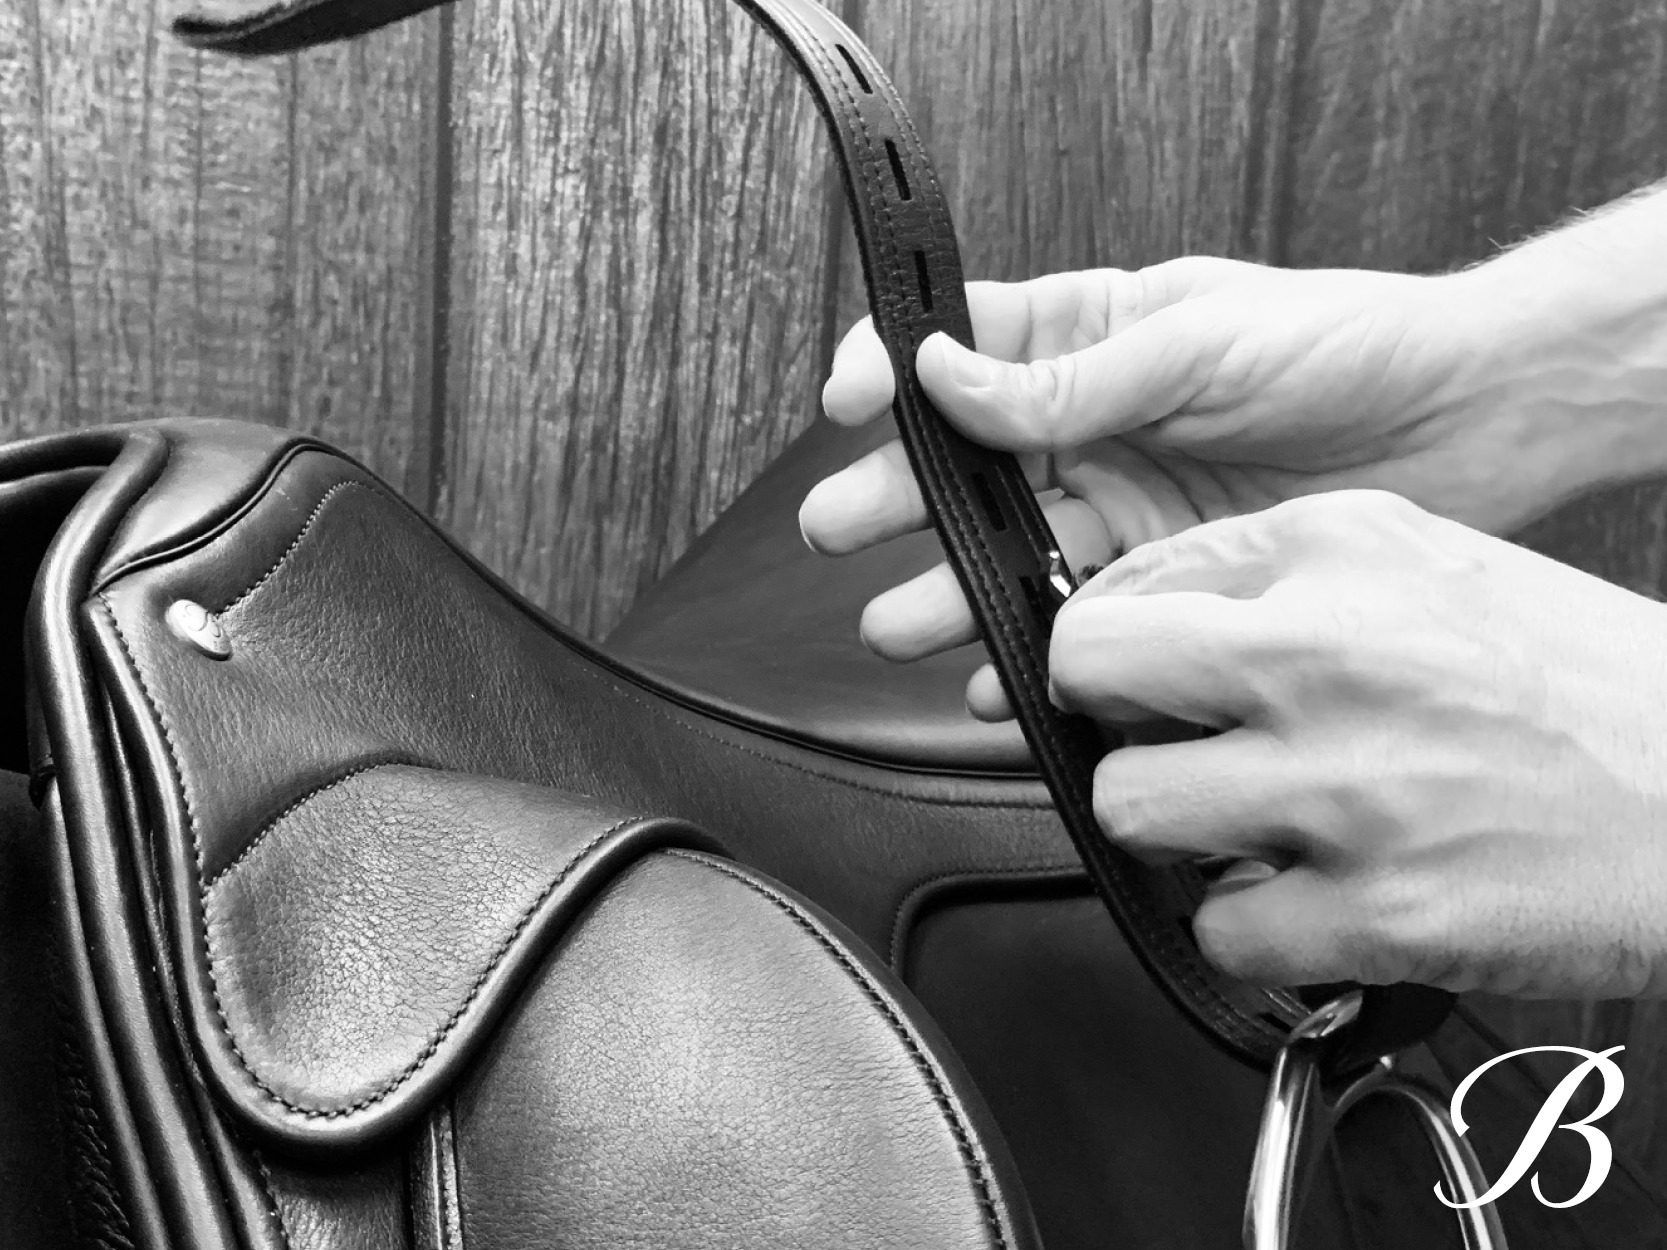 Feel closer to your horse in just 5 minutes with Bates Leather WEBBERS